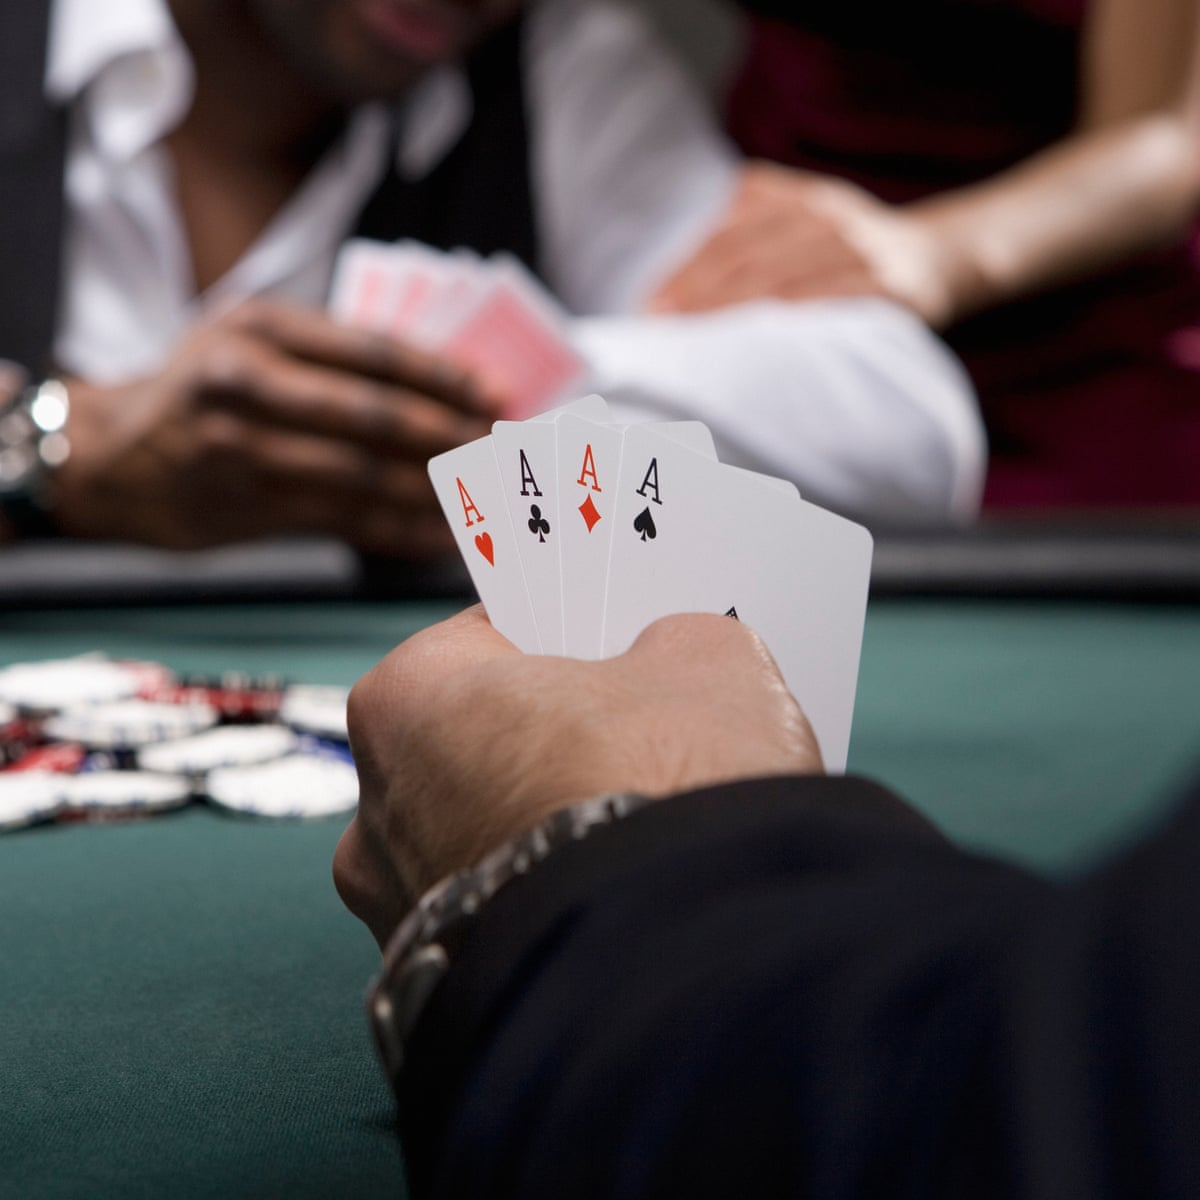 Poker players at higher risk of other types of gambling addictions |  Gambling | The Guardian